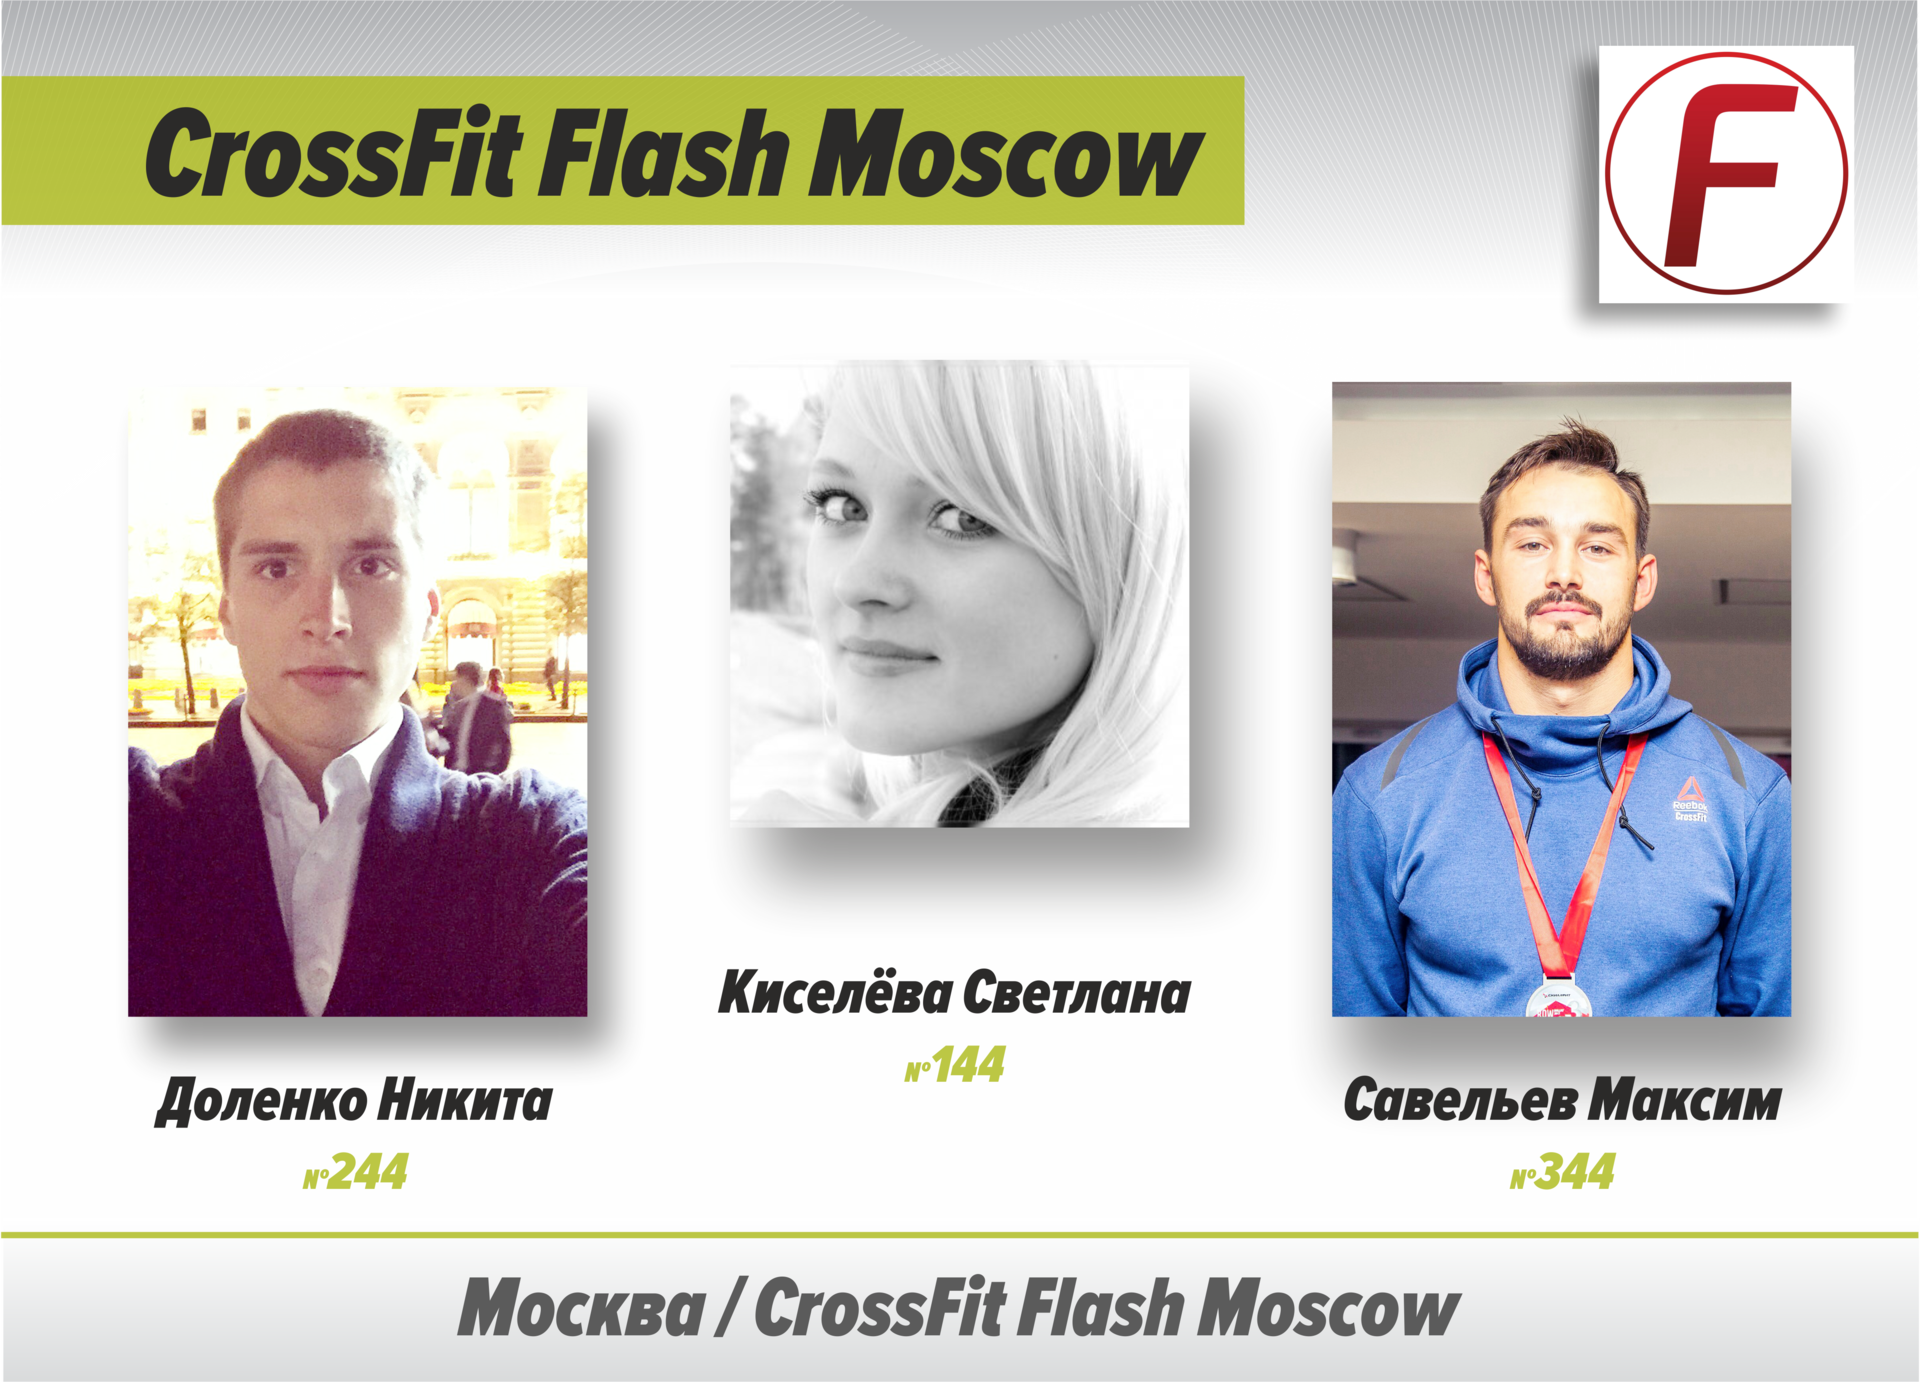 CrossFit Flash Moscow